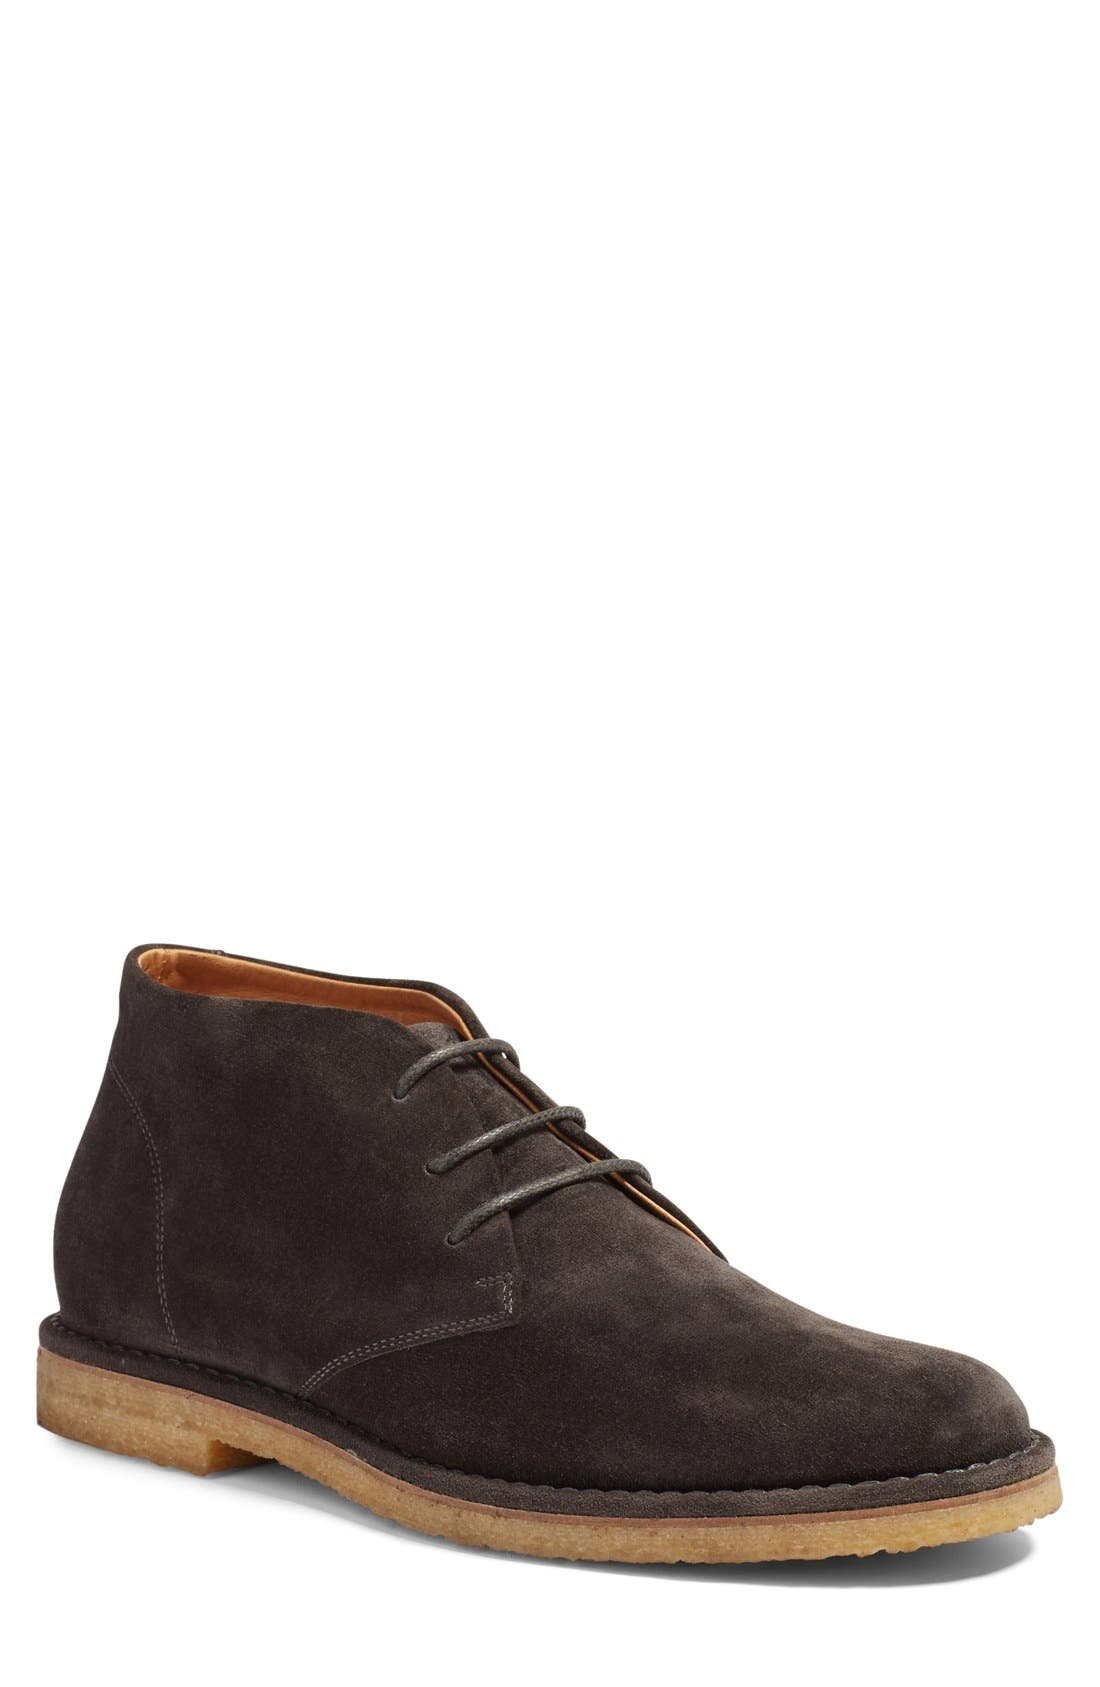 Men's Grey Chukka Boots | Nordstrom